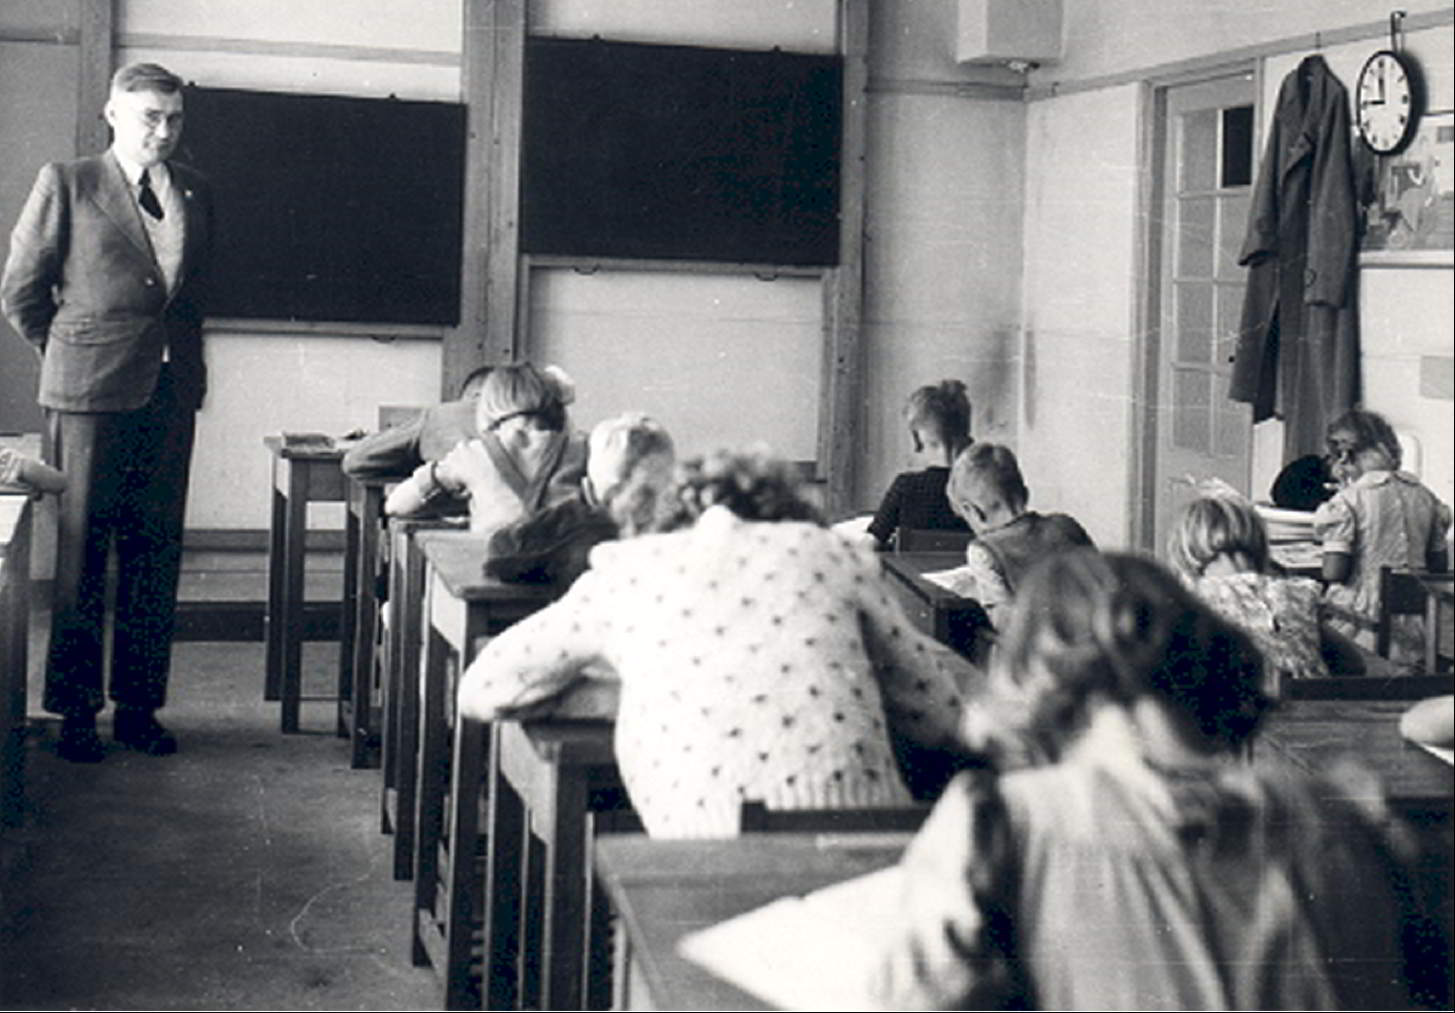 State school in camp II in Ens, opened on 15-04-1943.